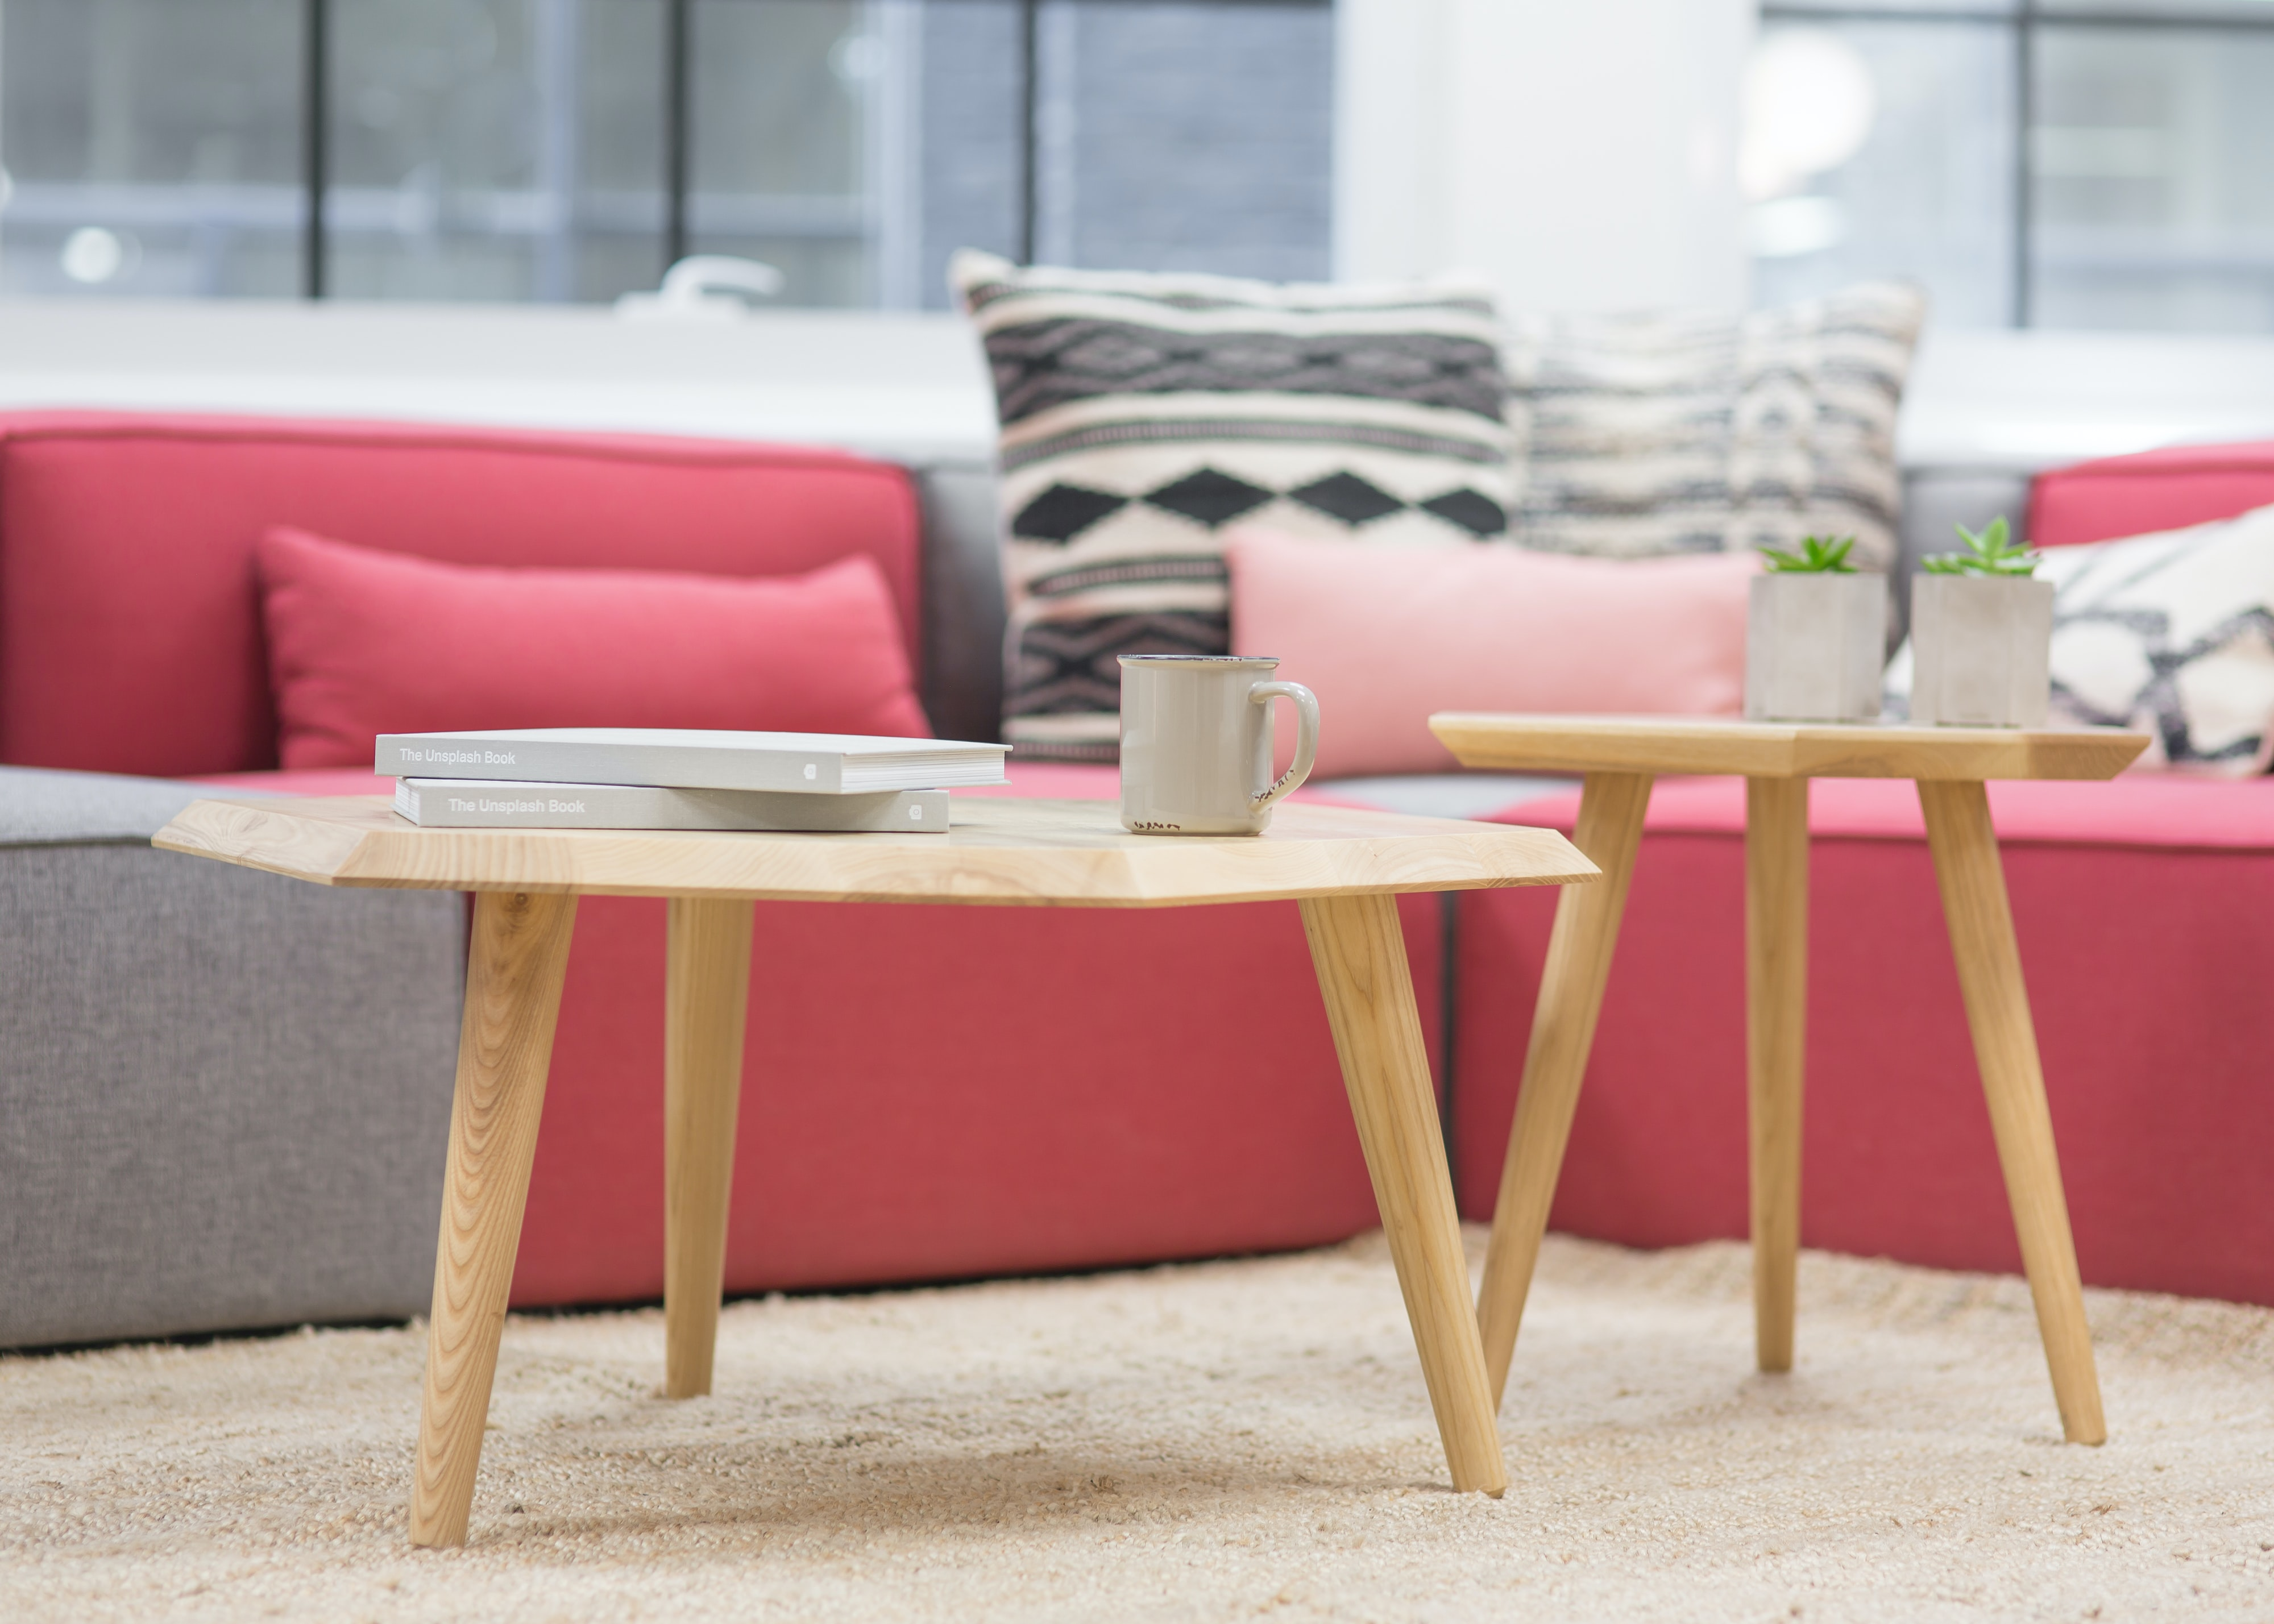 Coffee tables with potted plants, two books and a mug near a grey and pink sofa